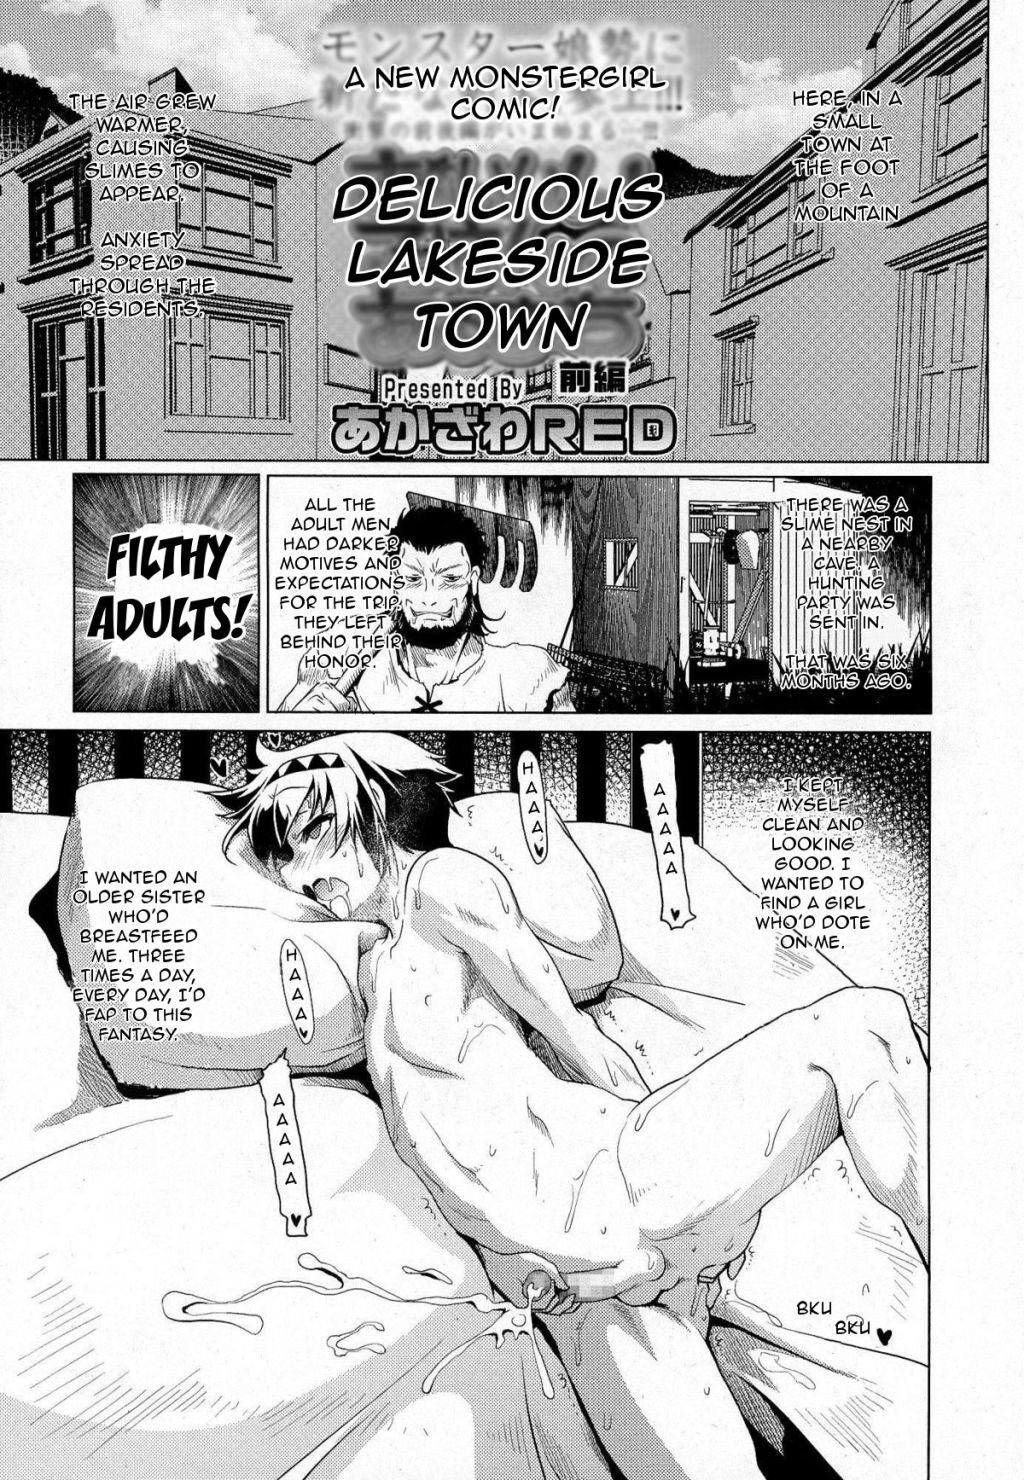 Creature-Cuties-Sexy-slime-girl-monster-girl-Porn-Comic-hentai-manga-FemDom-turned-out-mindbreak-innocent-young-boy-female-domination-cums-inside-vagina-reluctance-forced-straight-sex-Delicious-Lakeside-Town